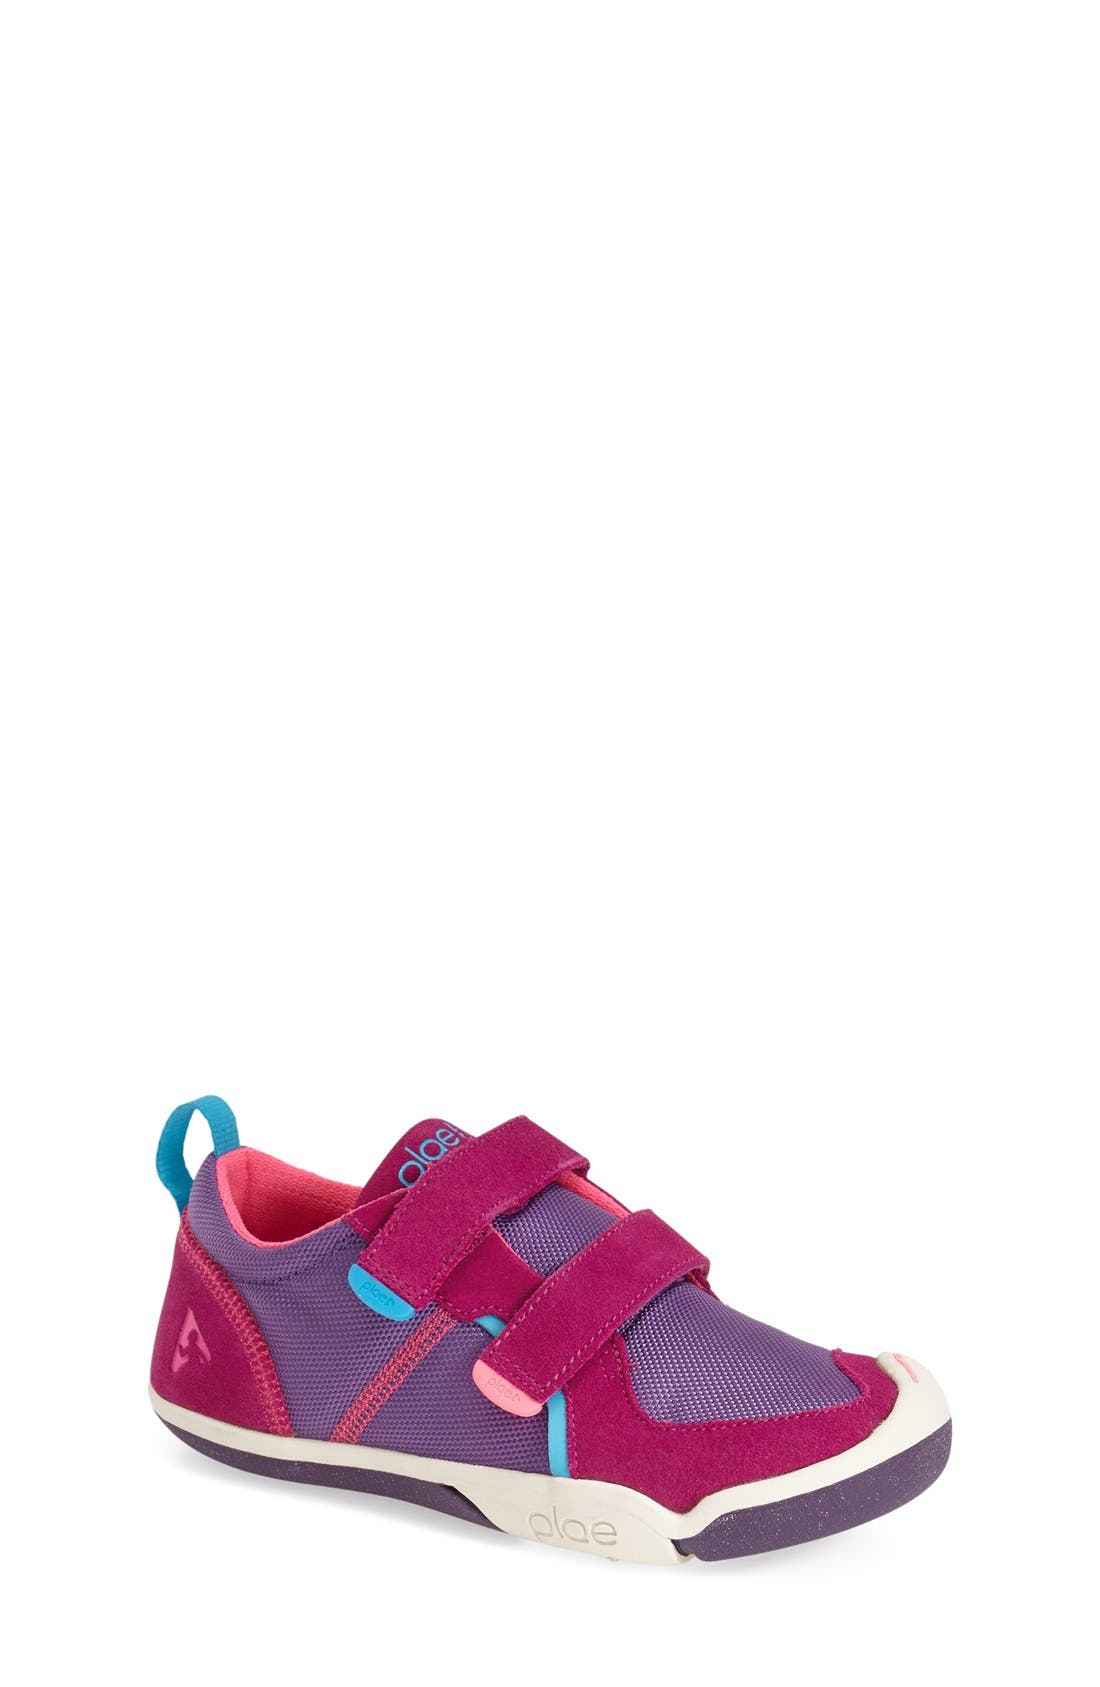 'Ty' Customizable Sneaker,                             Main thumbnail 1, color,                             FUCHSIA/ PURPLE